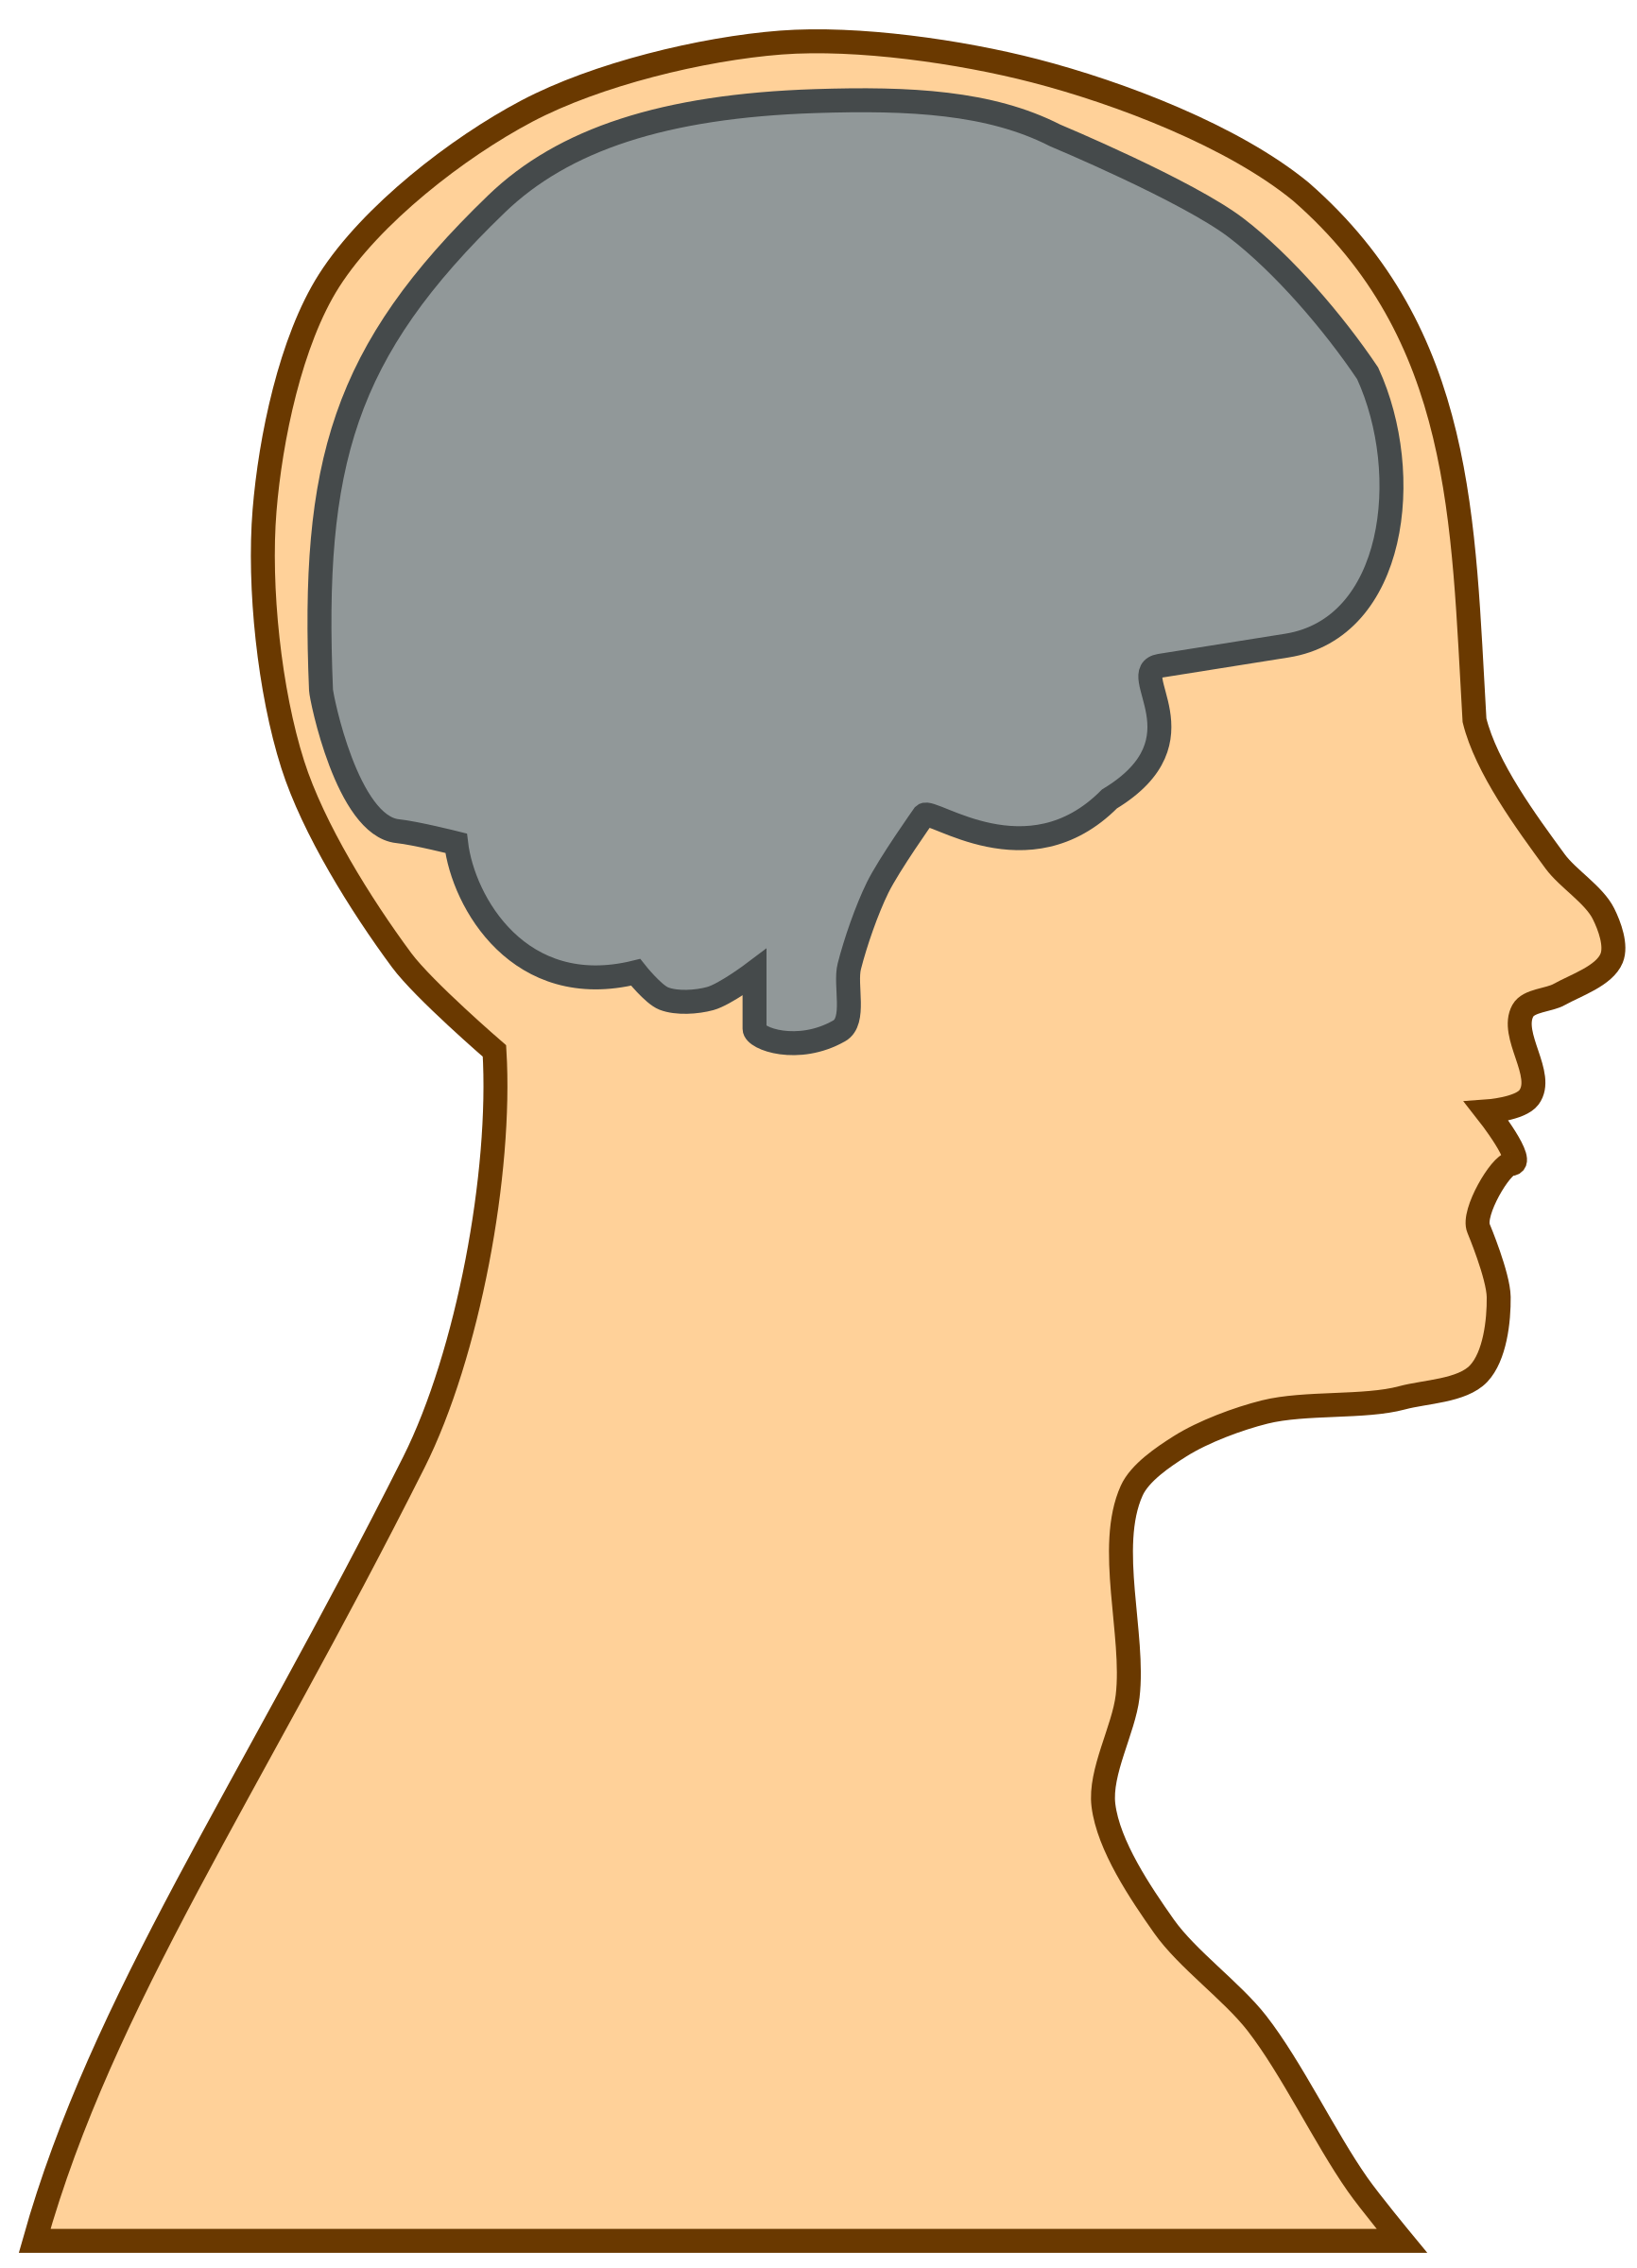 Brains clipart silhouette Brain a brain of a